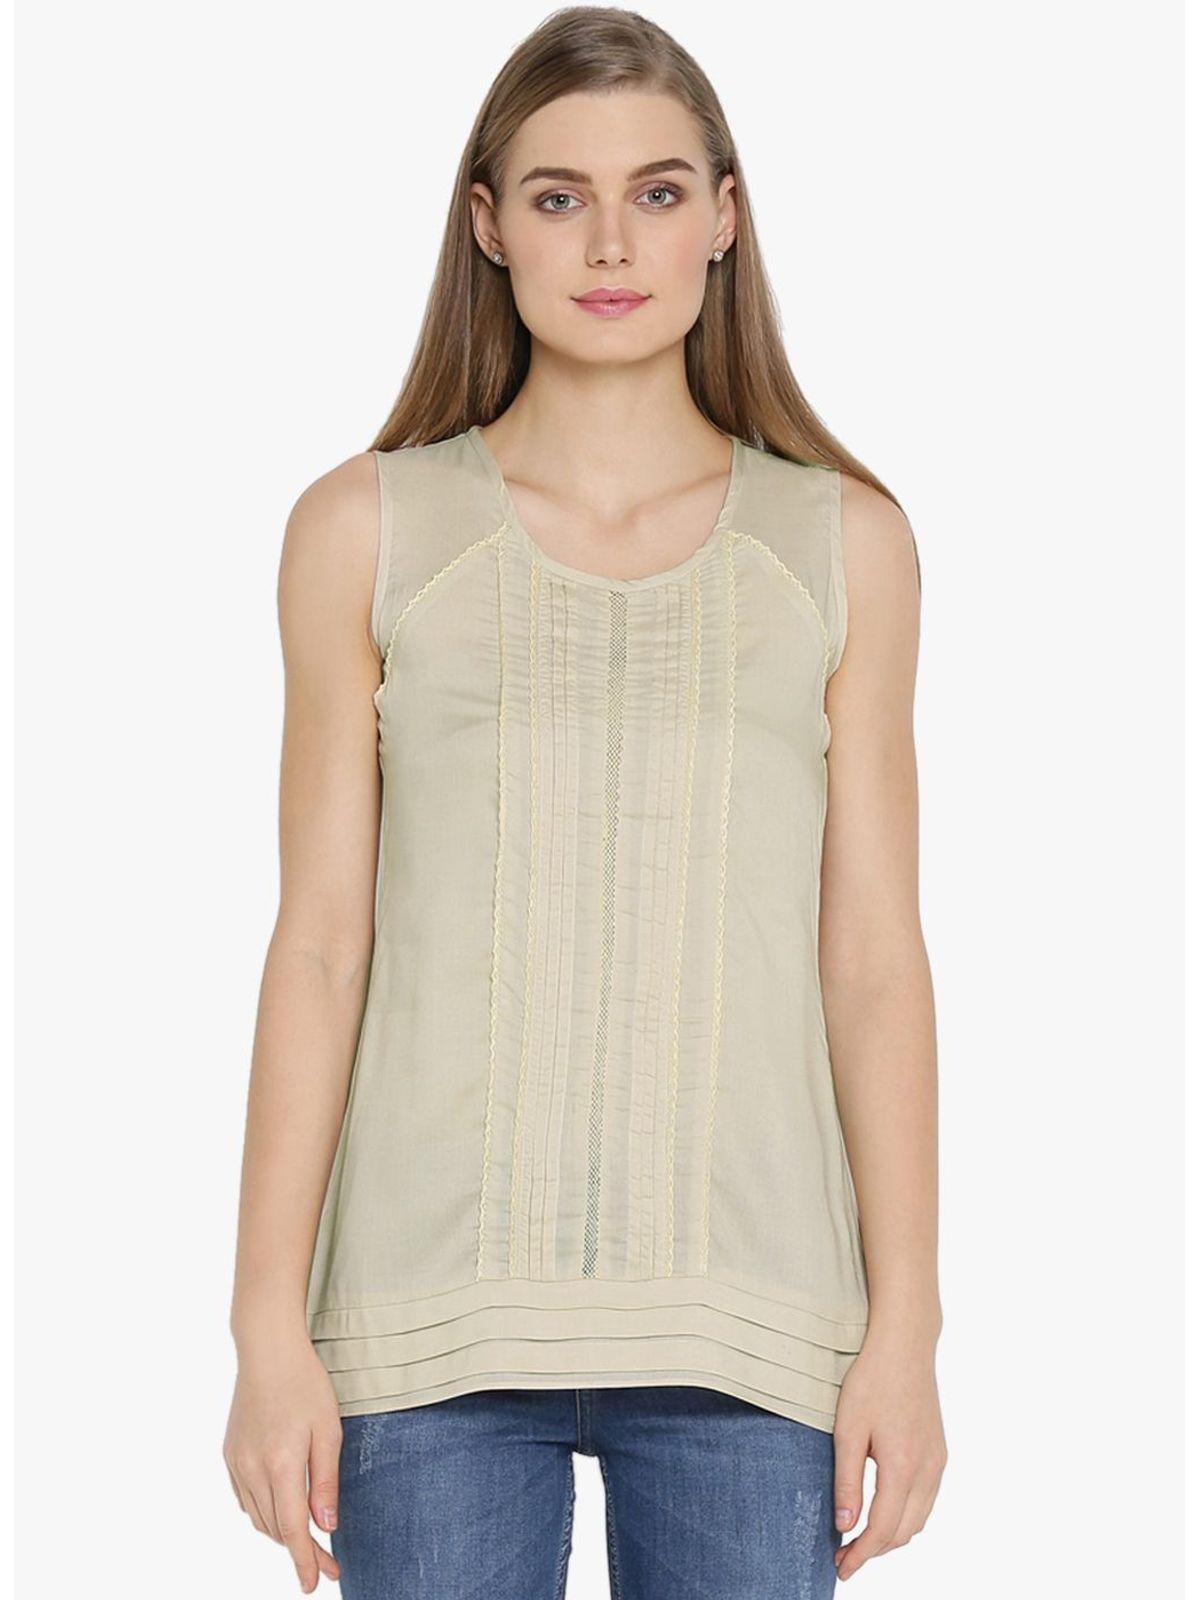 ALISON PLEATED LACE TOP